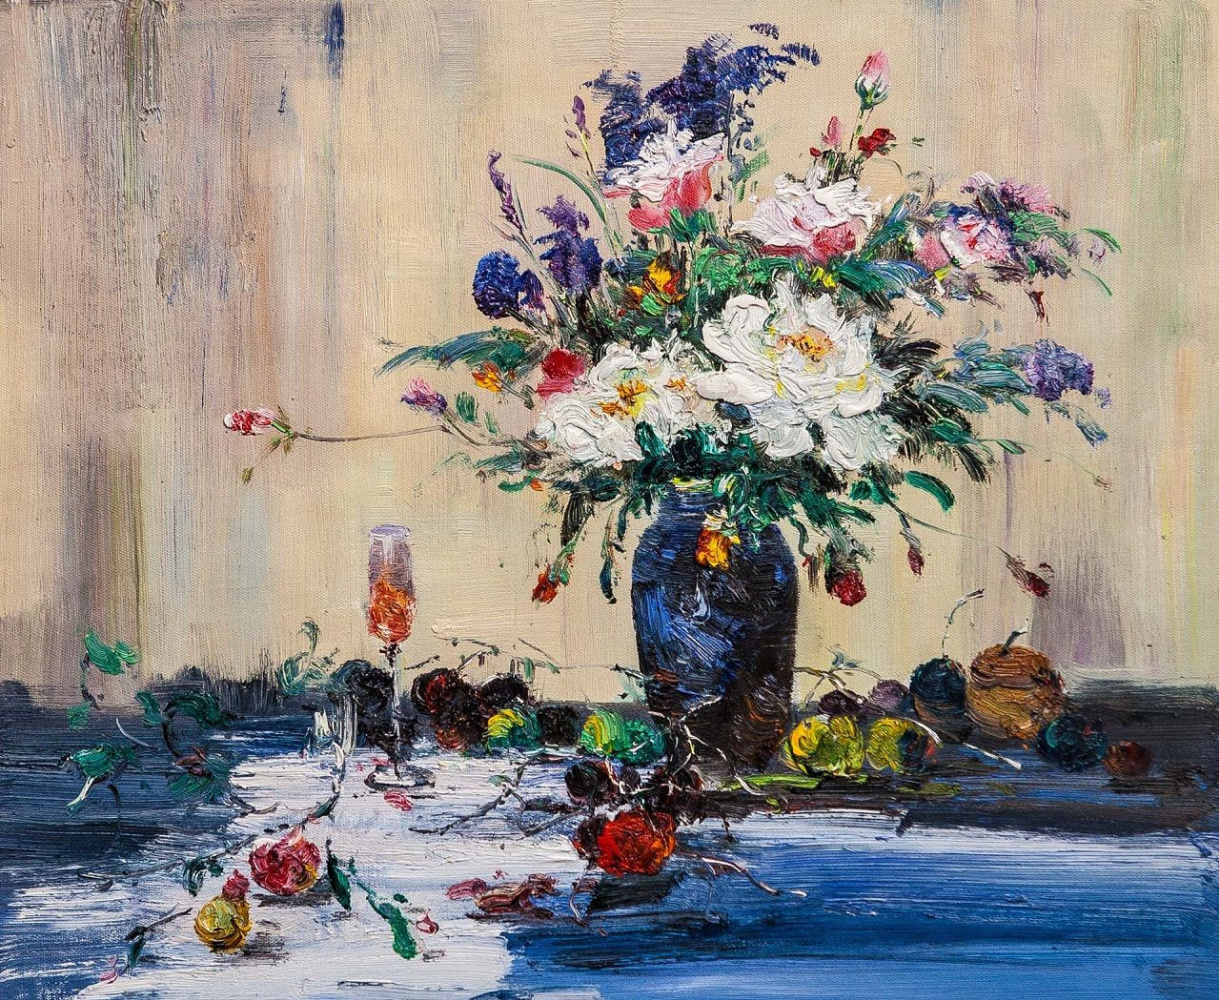 (no name). Still life with a bouquet of flowers in a blue vase and garden fruits